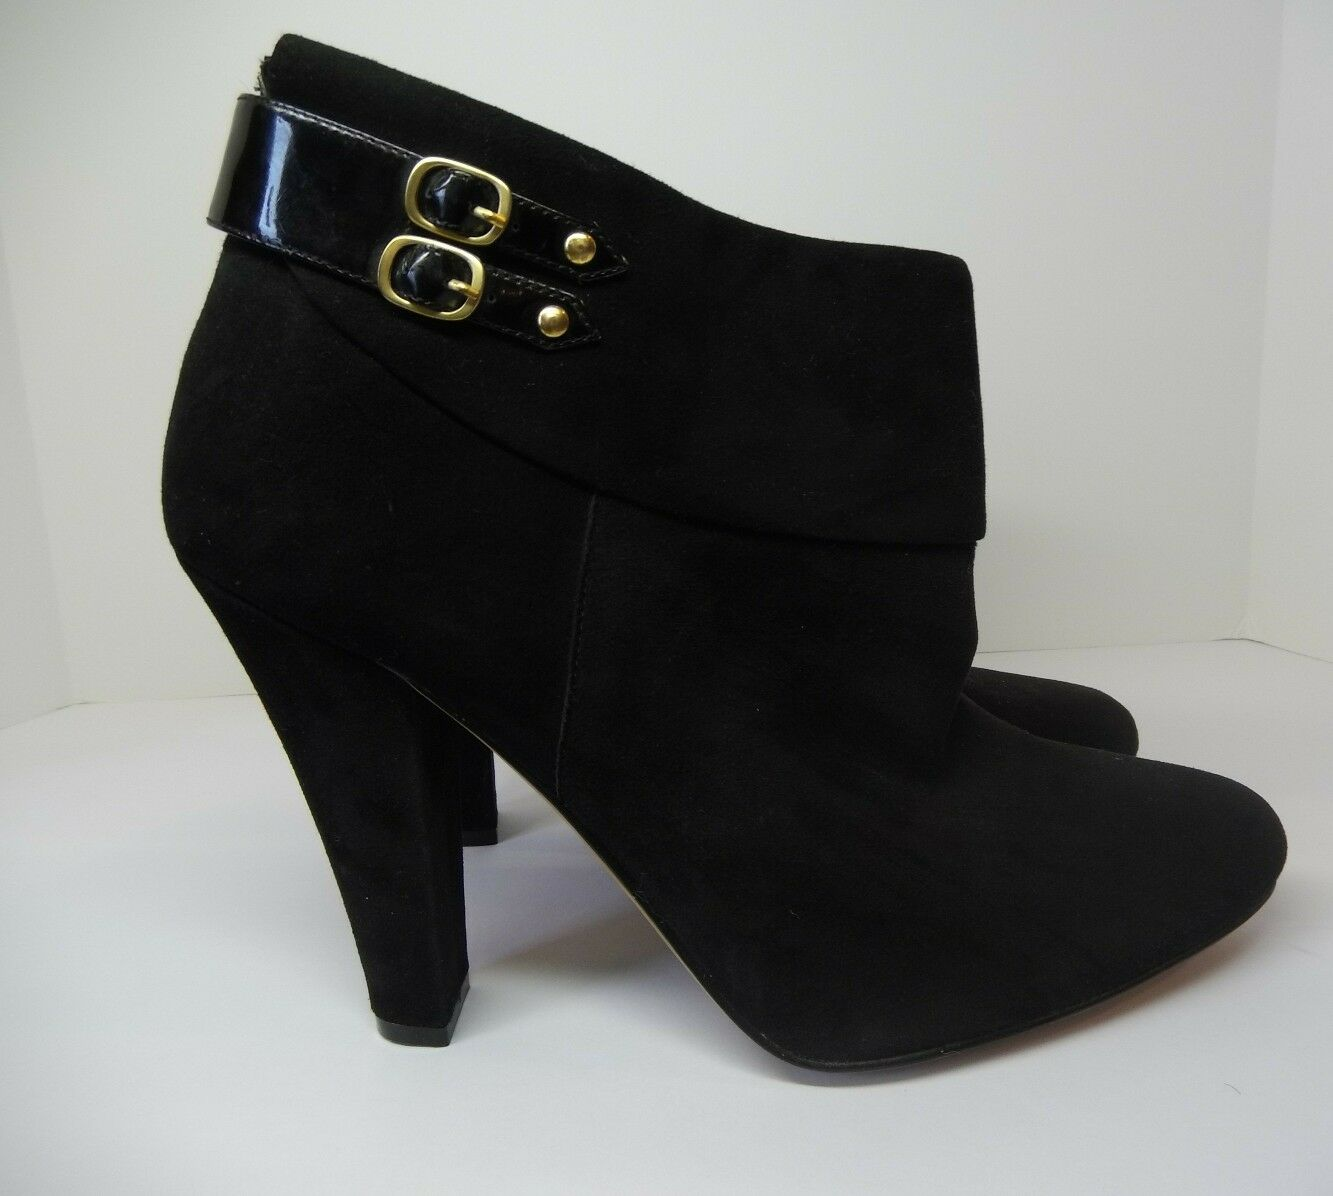 STEVEN By Steve Madden  ELLUSION  Black Suede Ankle Boots Womens Sz 10 Illusion